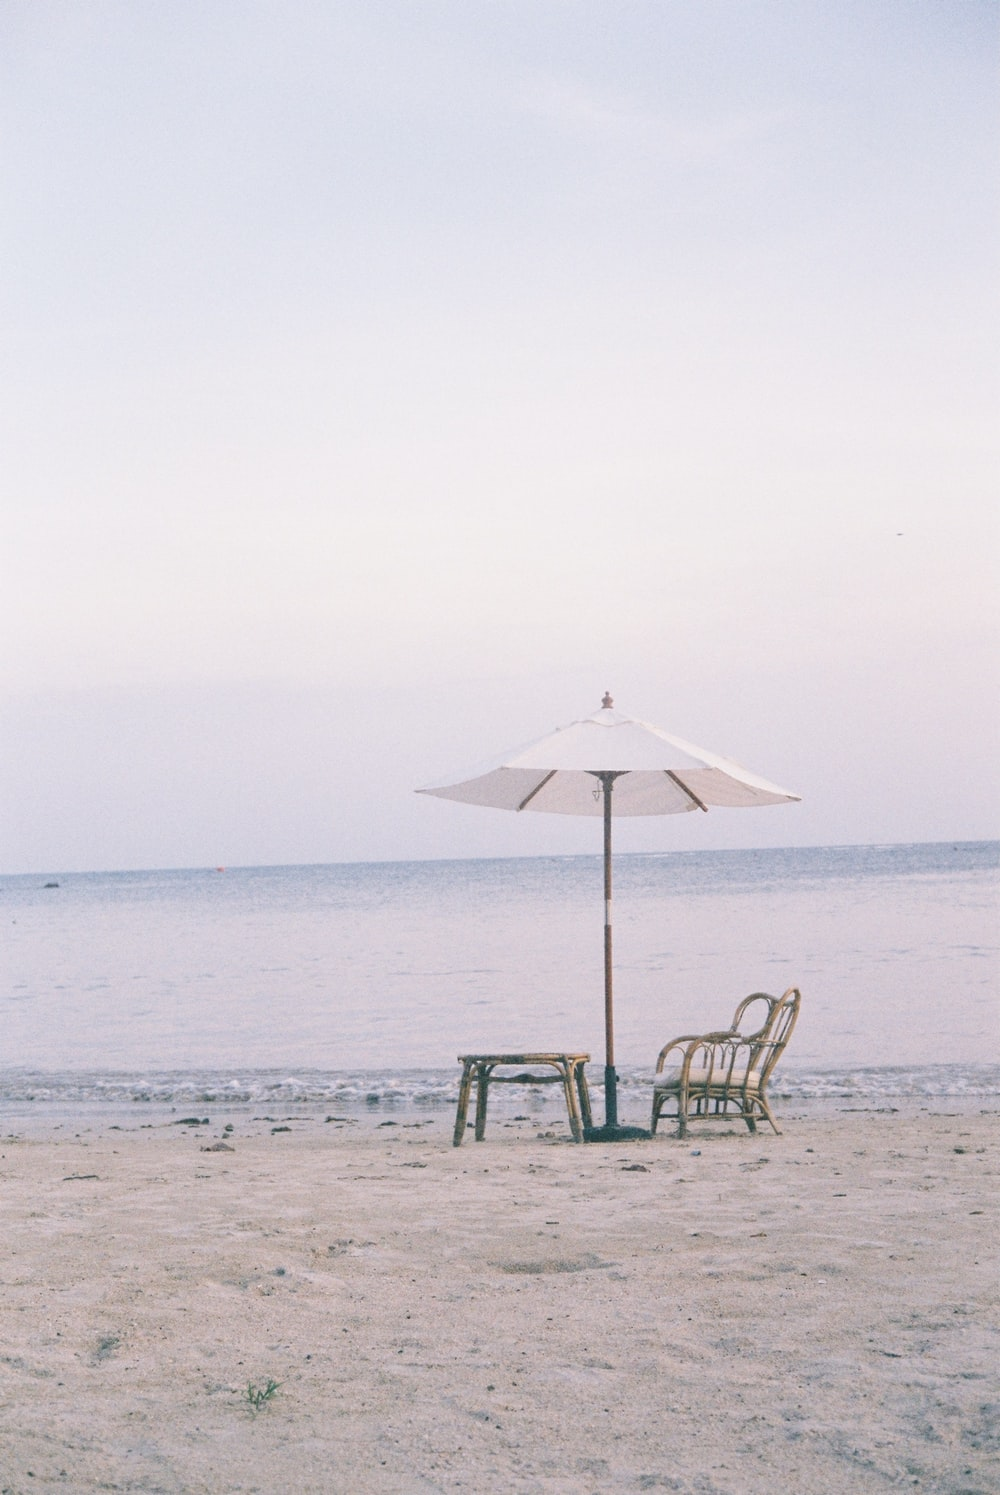 green and black wooden chair under white umbrella on beach during daytime